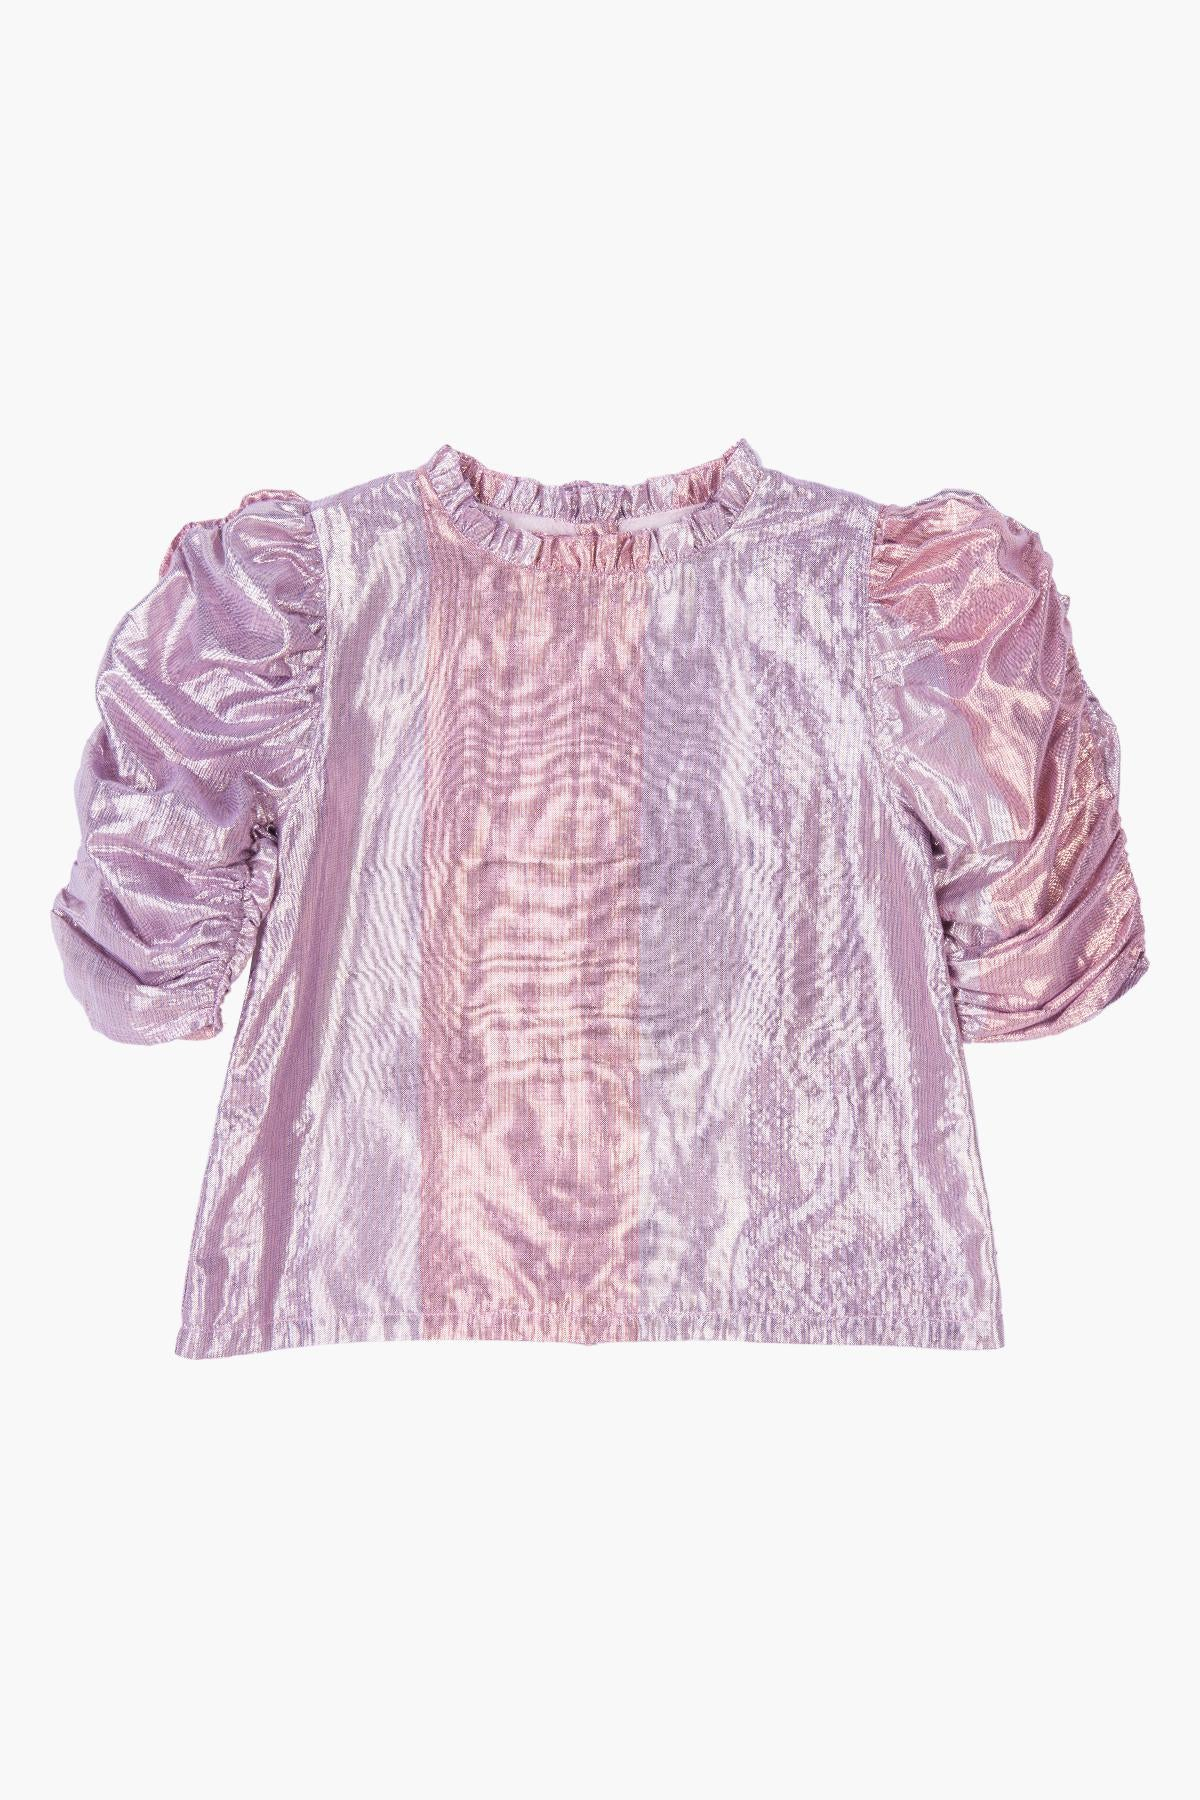 Velveteen Dionne Girls Shirt